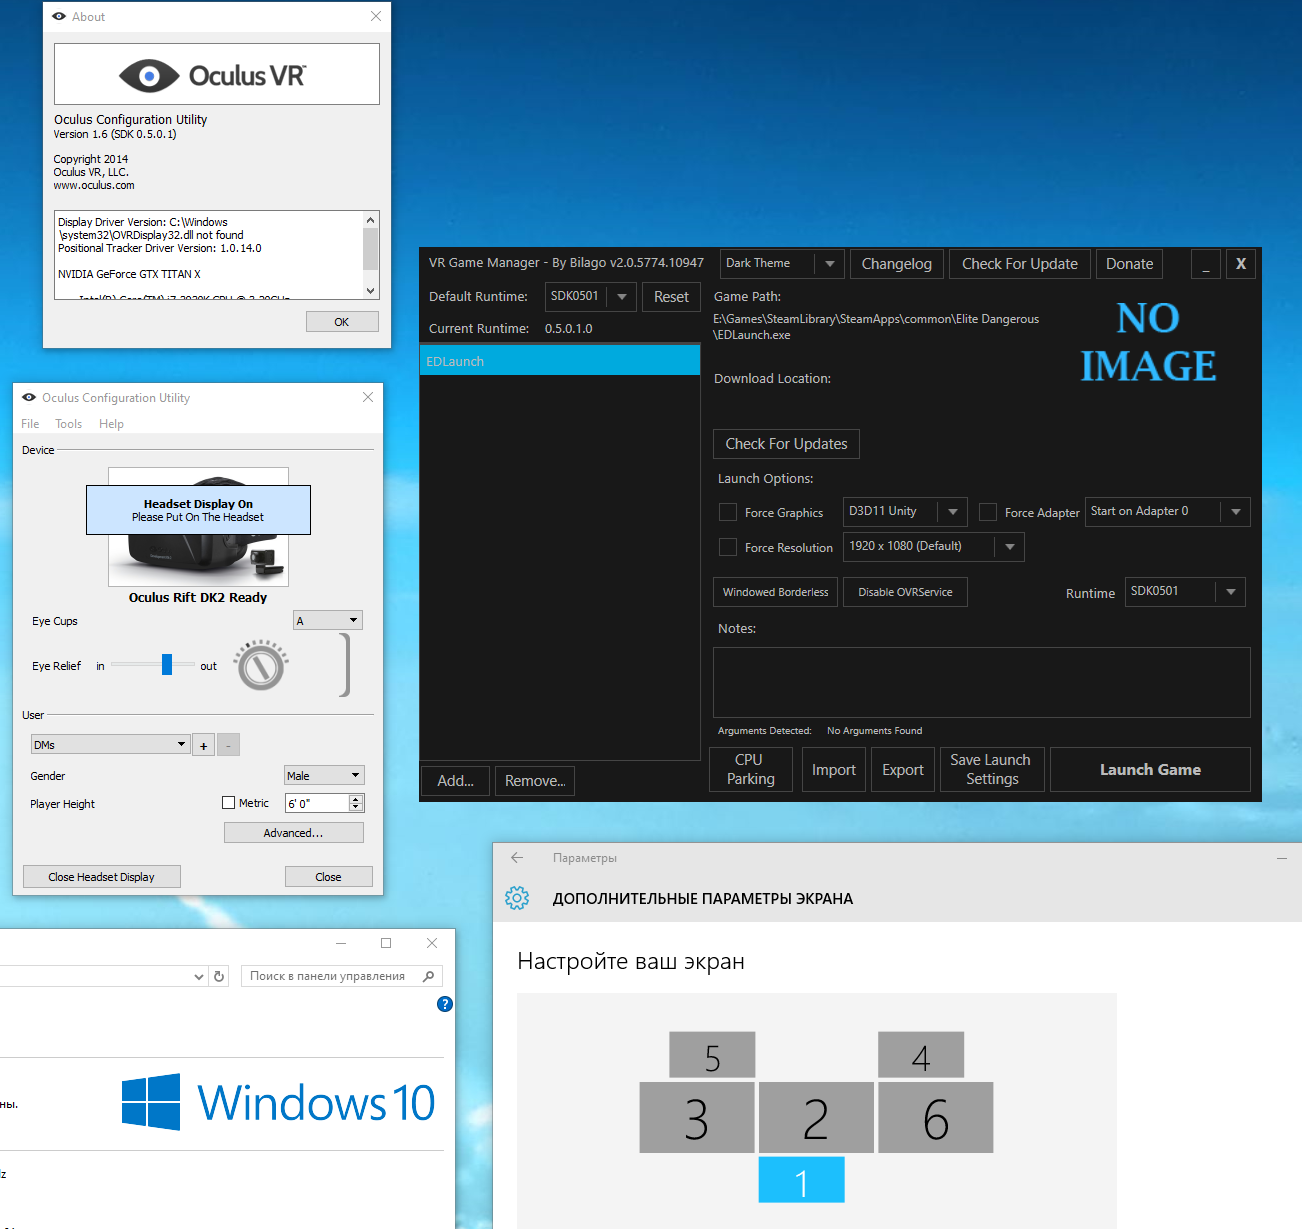 Windows 10 Compatibility w/ Oculus Rift DK2 - PLEASE READ